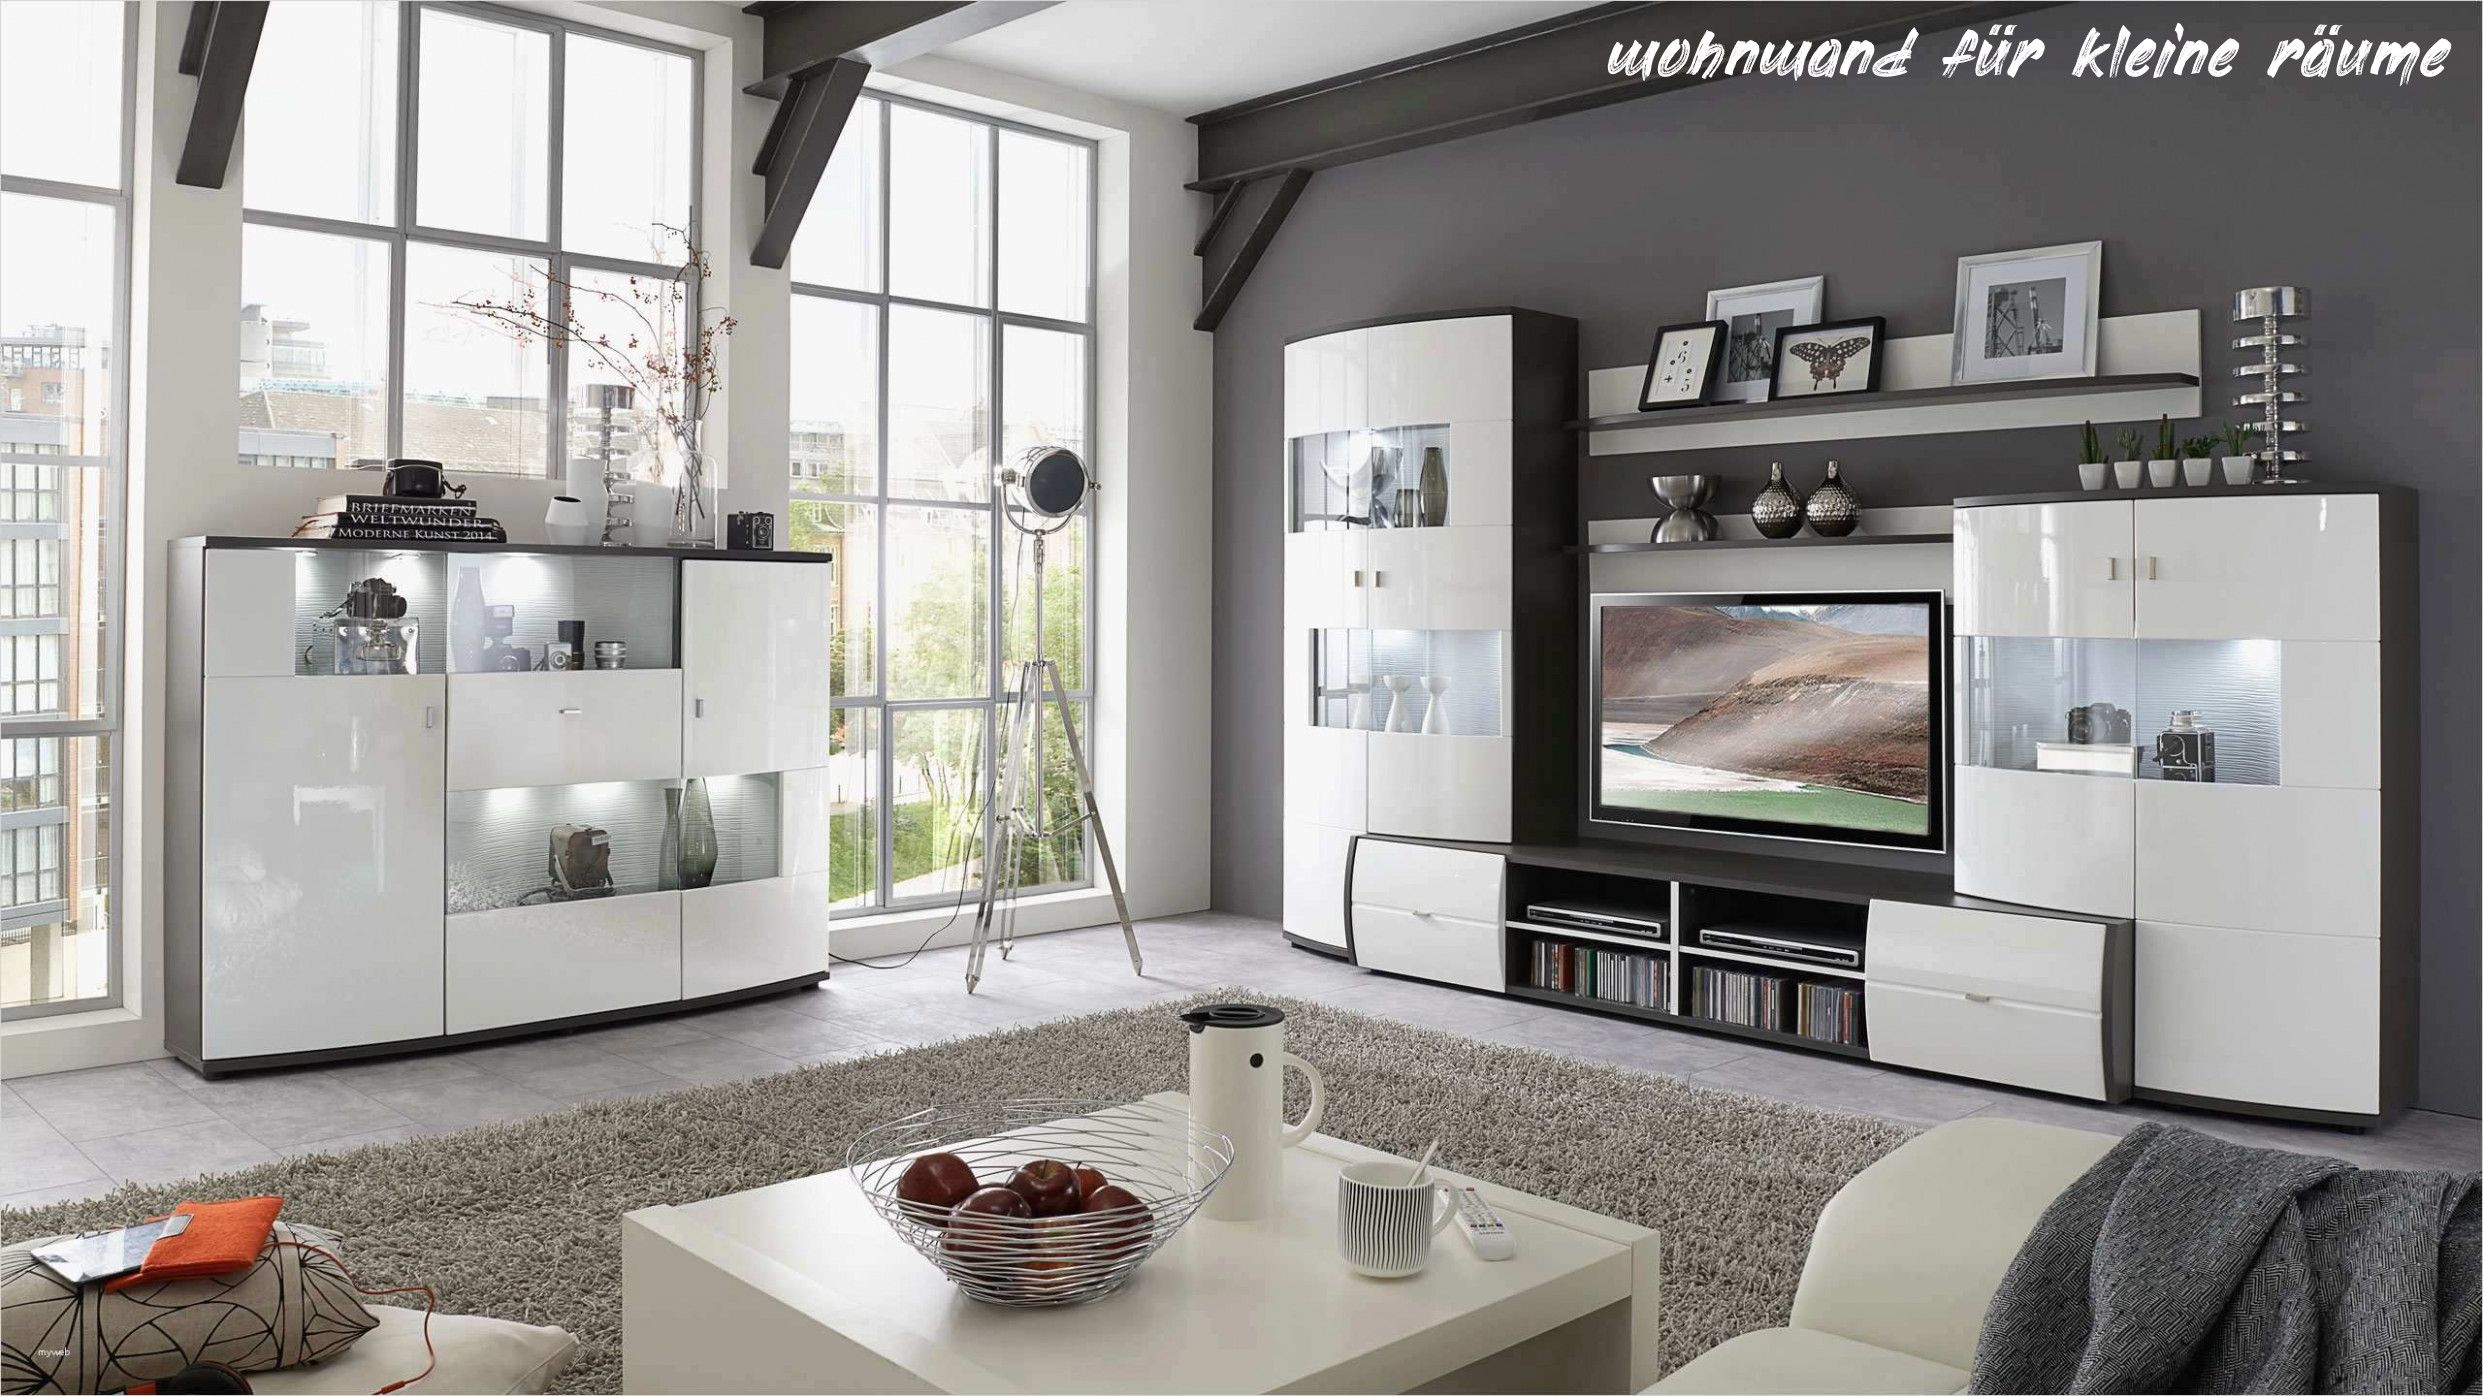 Wohnwand Für Kleine Räume 7 Wohnwand Für Kleine Räume In 2020 | Modern Furniture Living Room, Quality Living Room Furniture, Living Room Sets Furniture